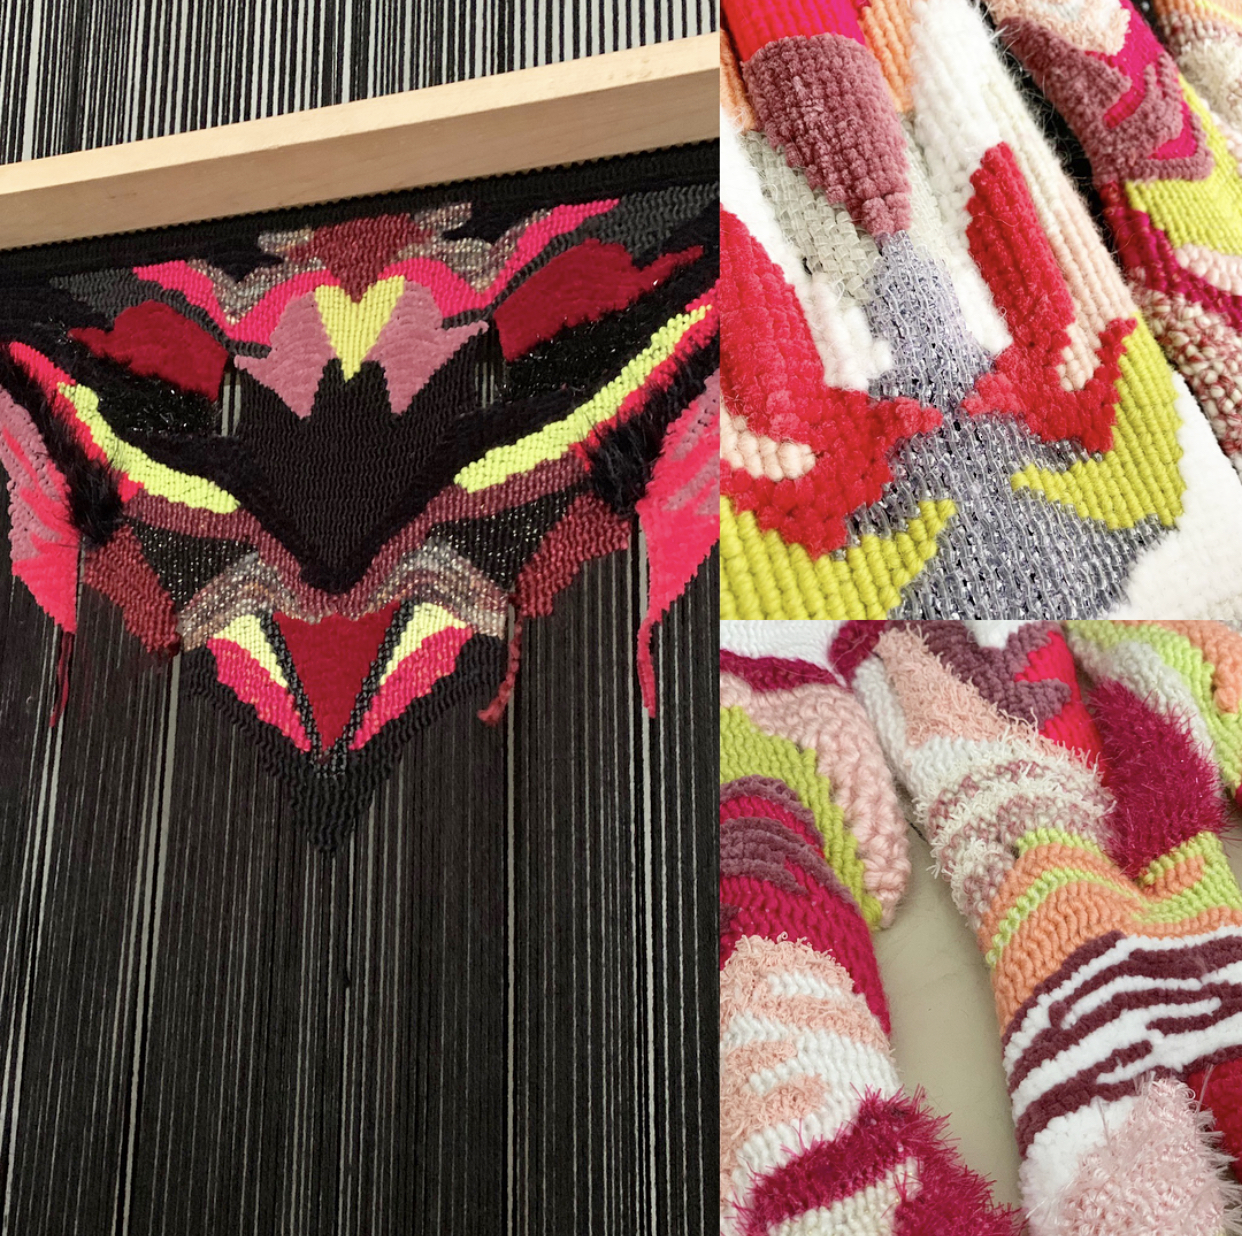 Multicolor_Weaving_Textile-Bethany-Mikell.jpeg